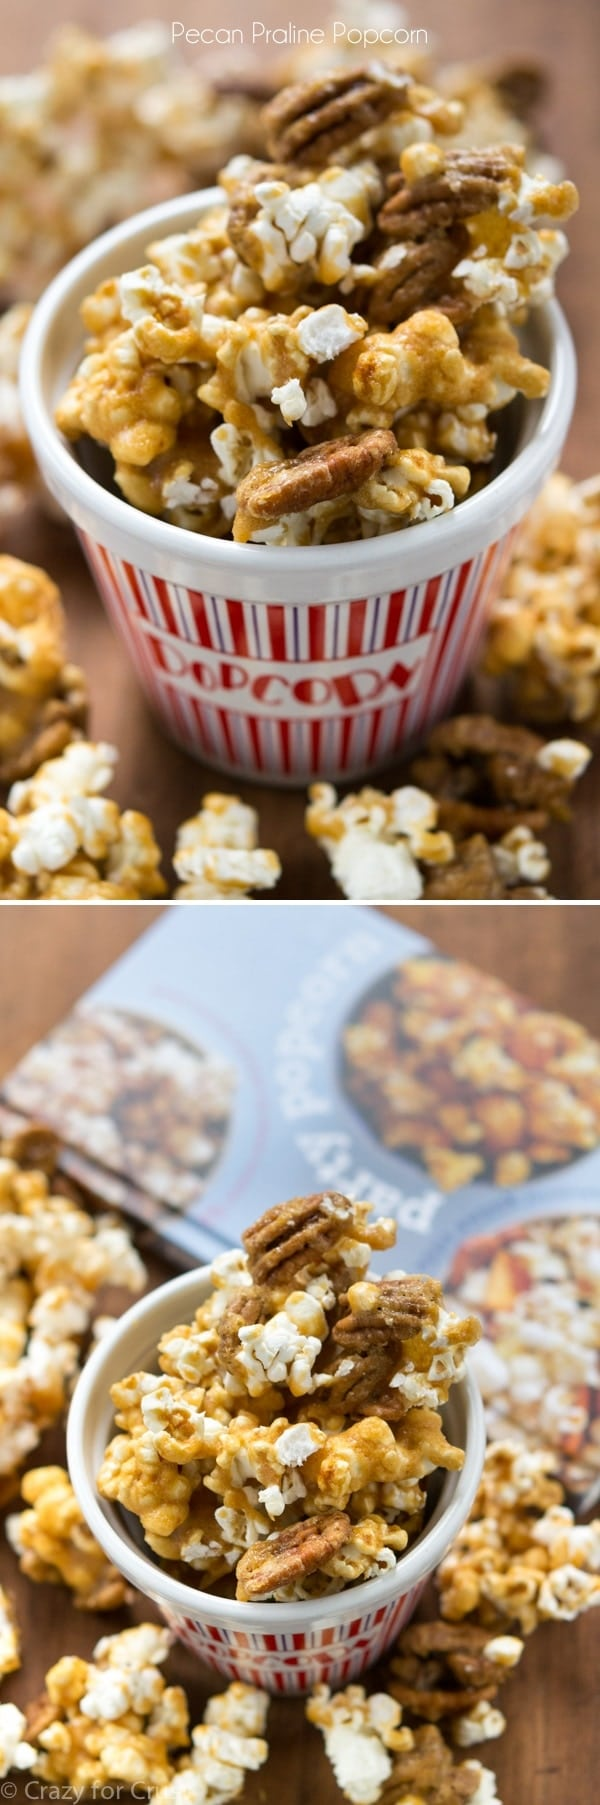 Pecan Praline Popcorn - the best mix of pecan praline and popcorn! It's an easy recipe and so addictive!